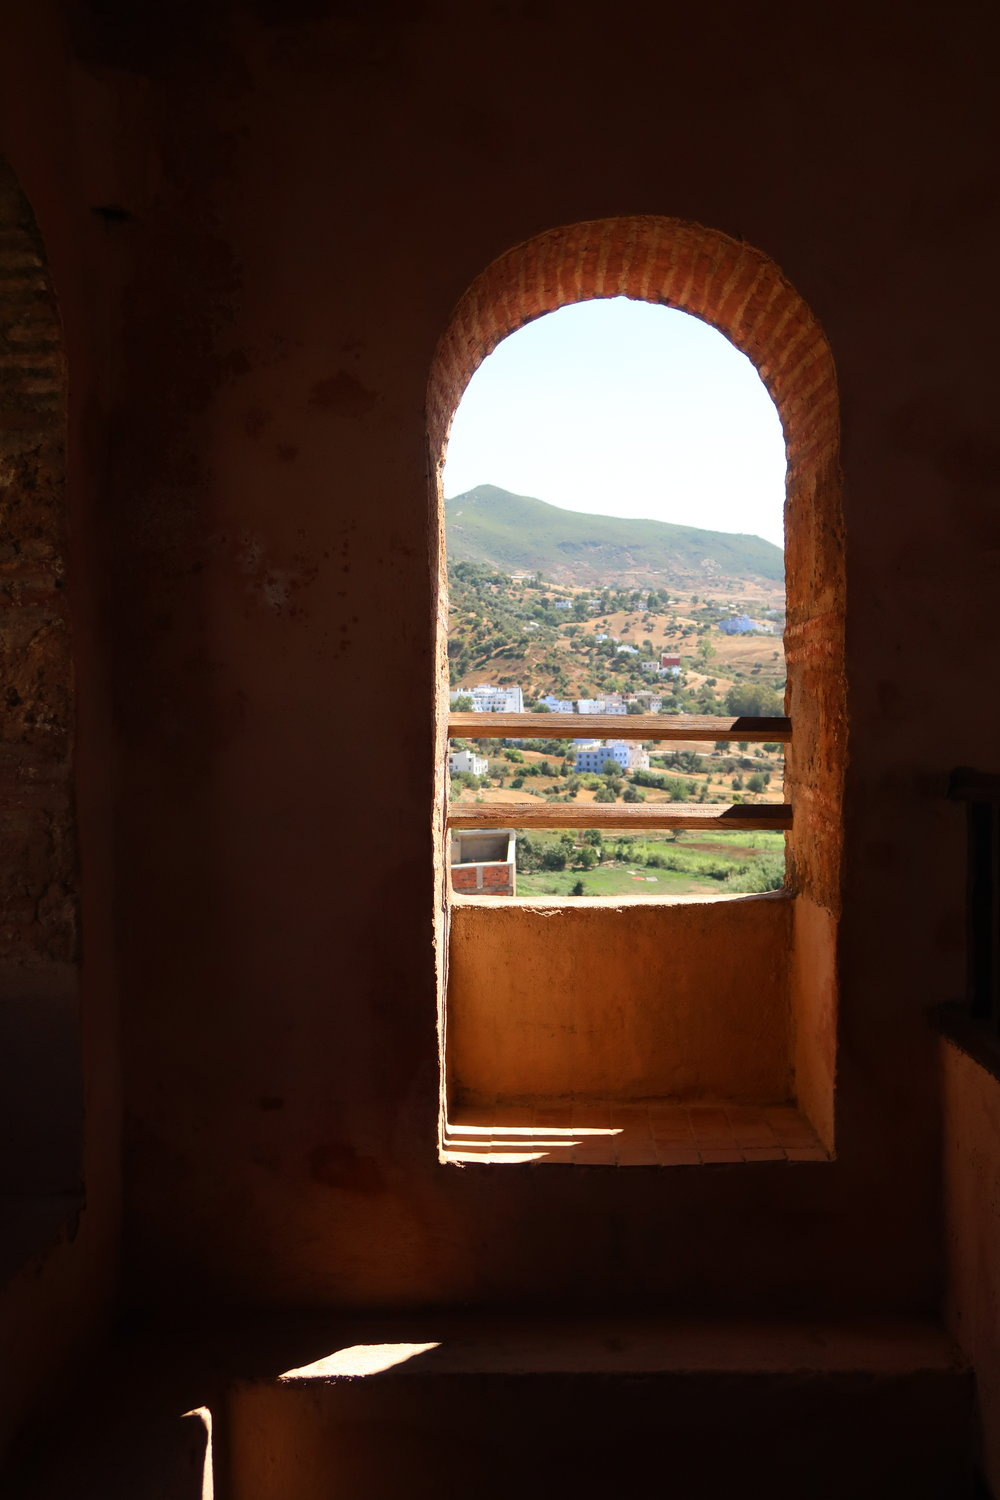 A peek through the window of the Chefchaouen Kasbah